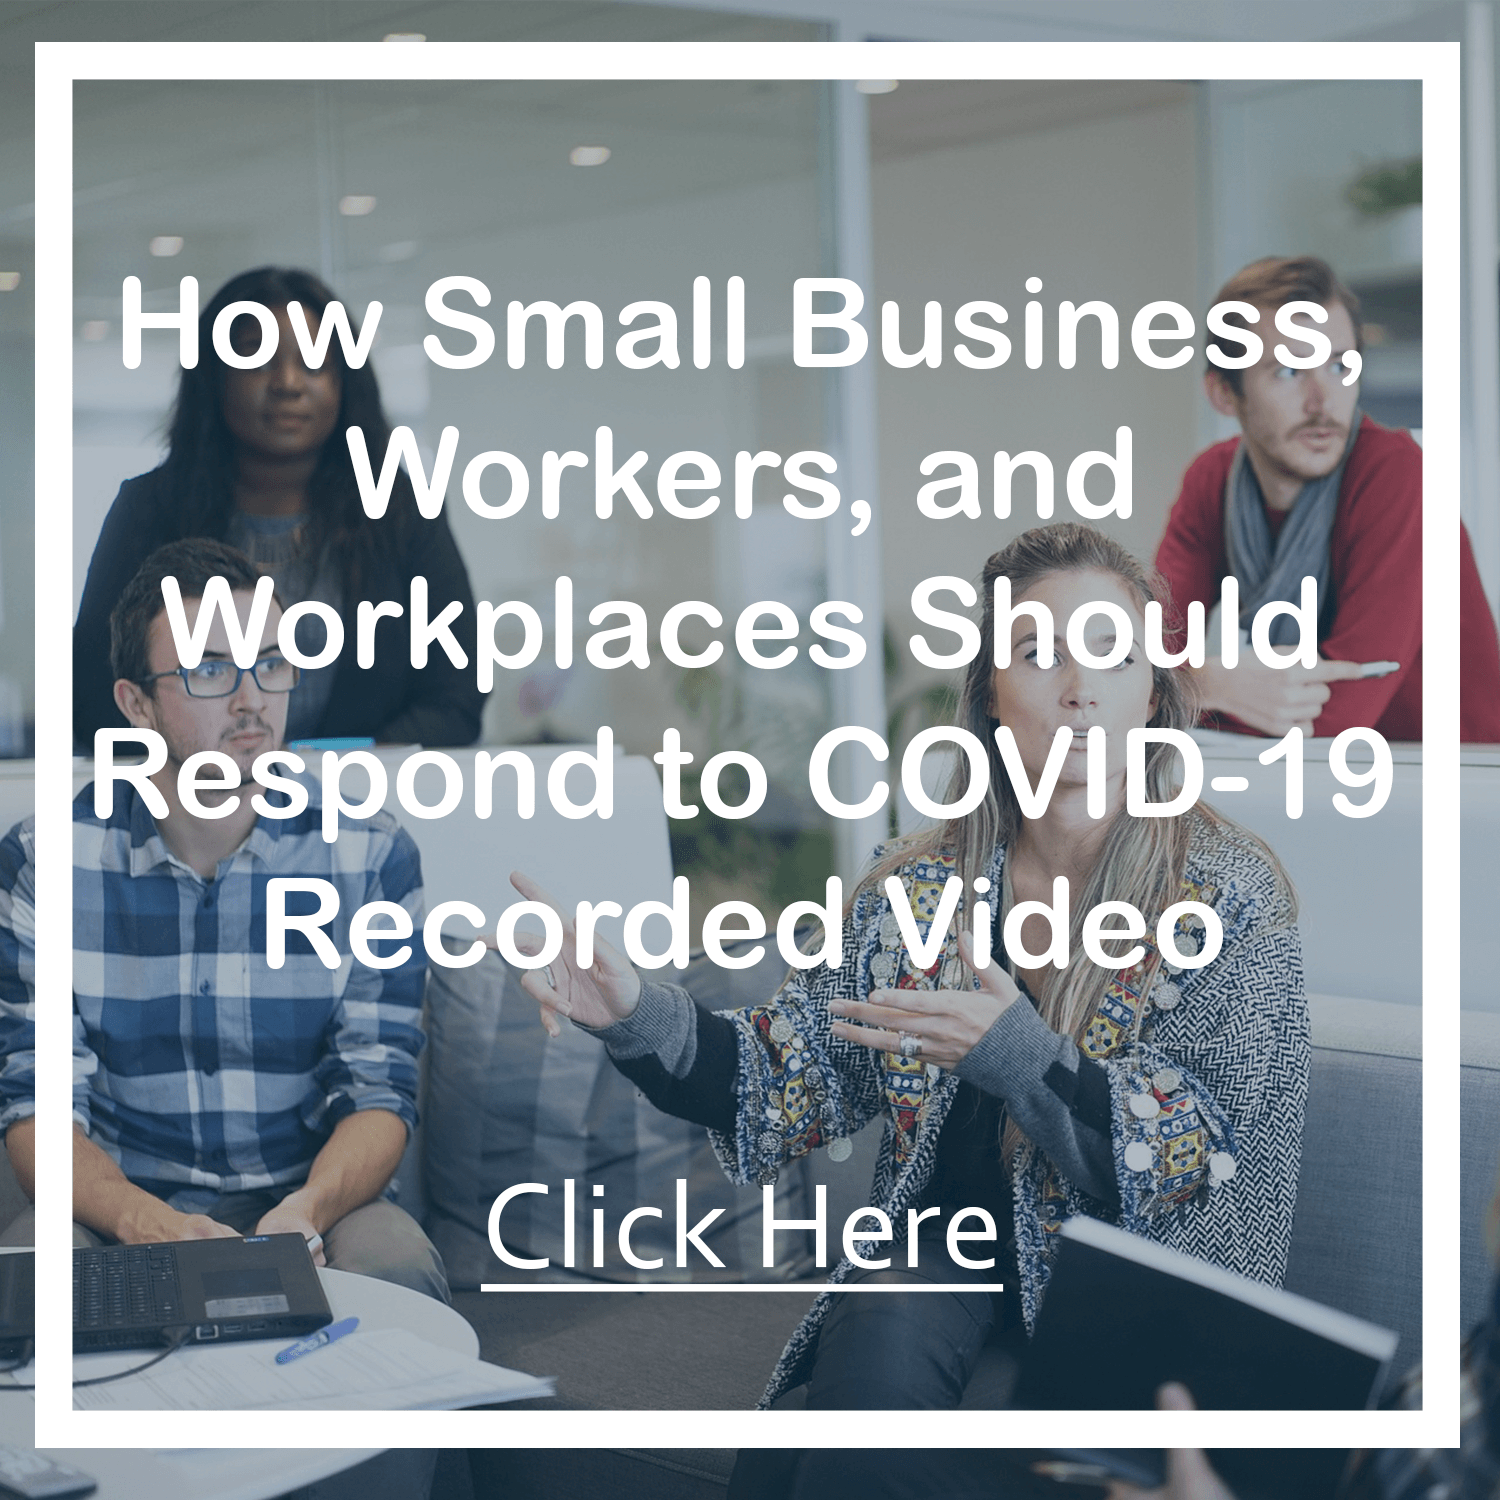 how business respond video